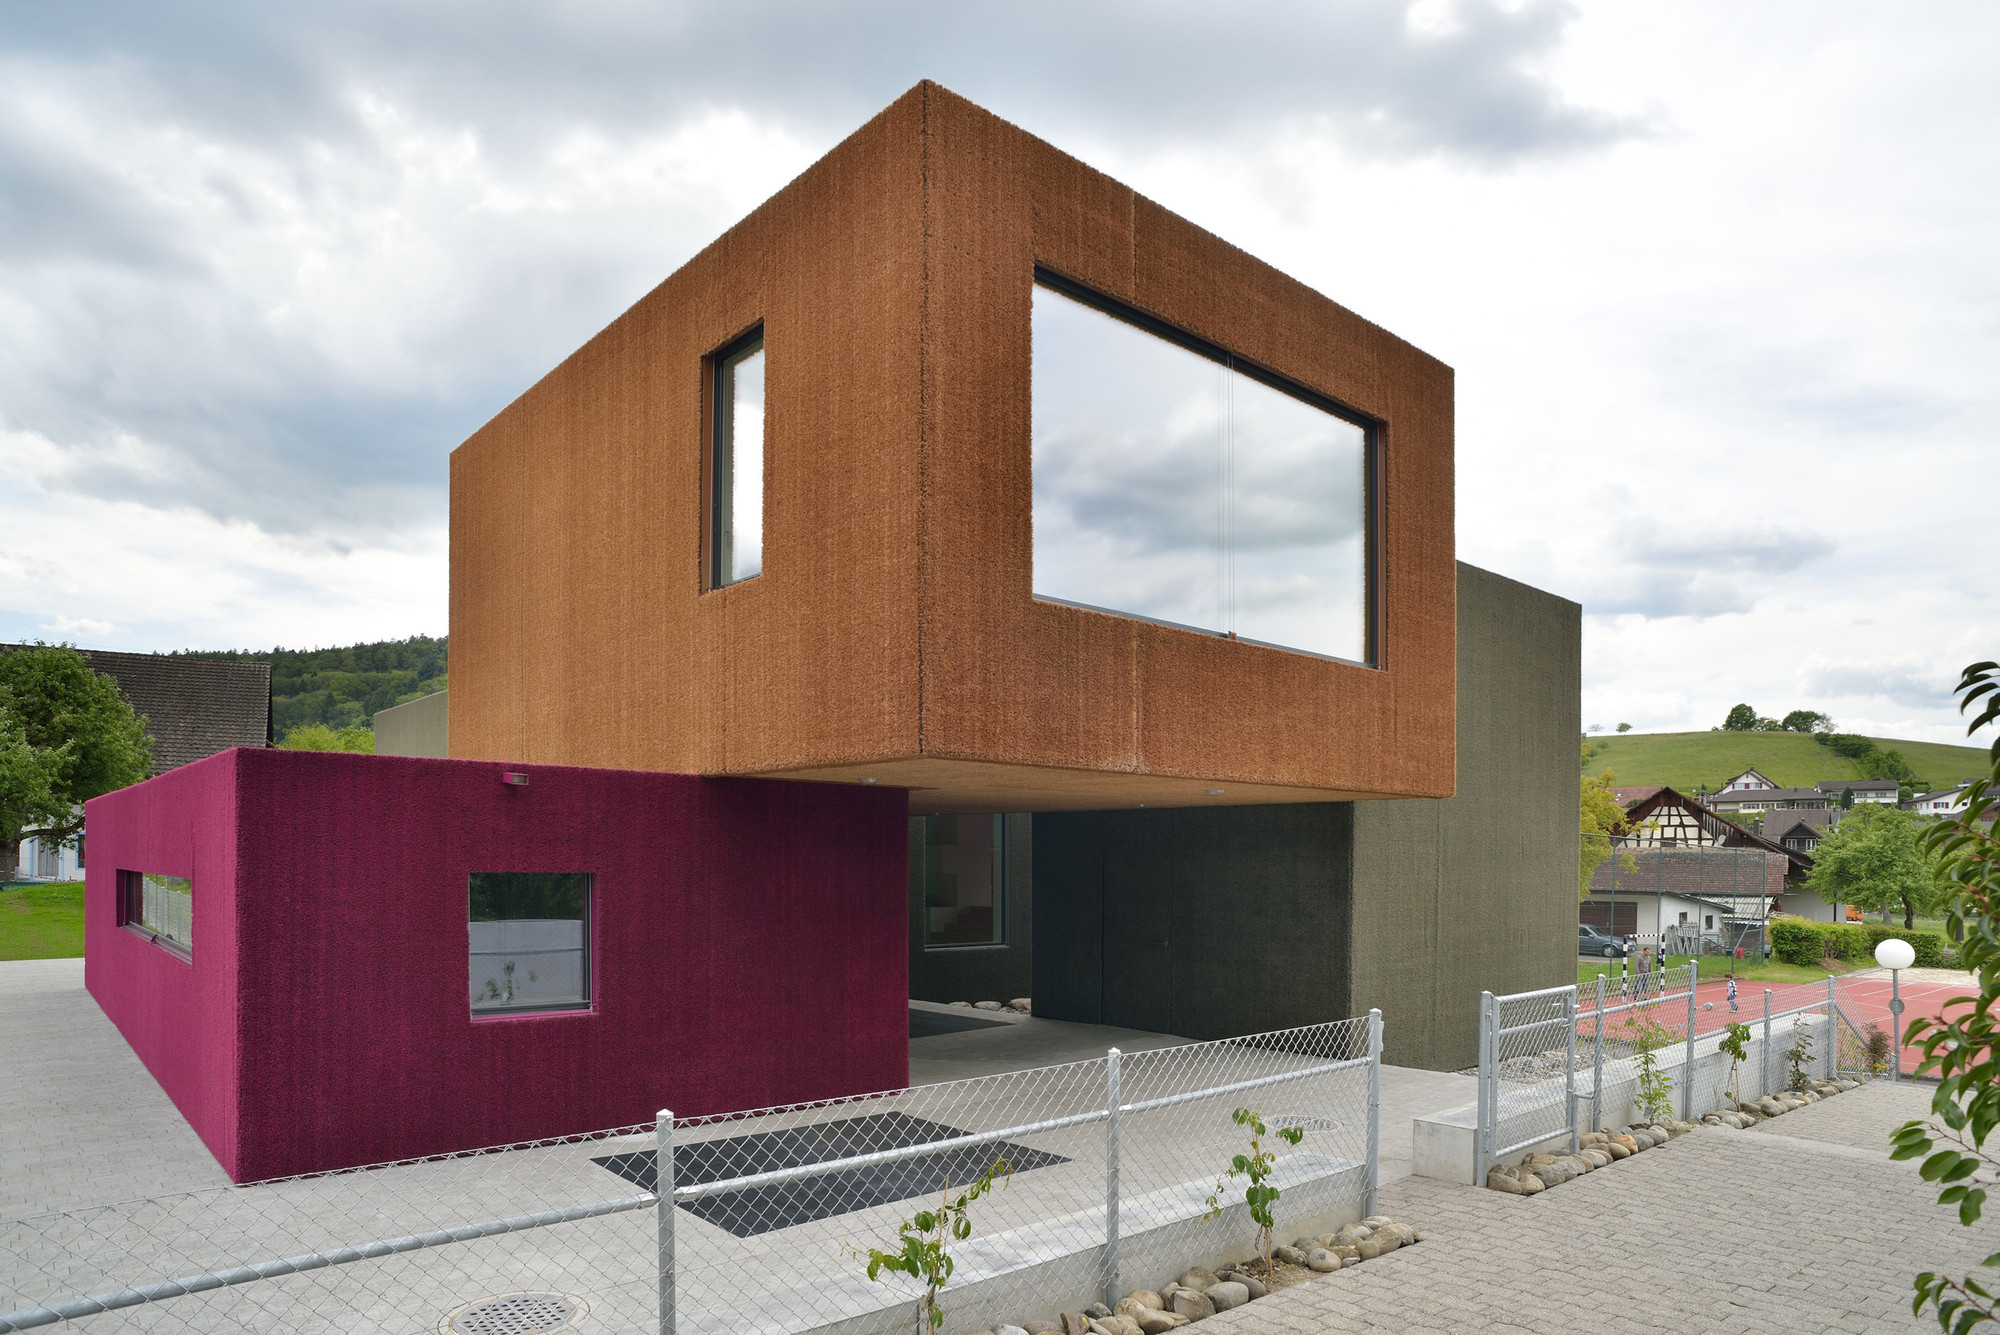 New Weiach Kindergarten / L3P Architekten, © Sabrina Scheja